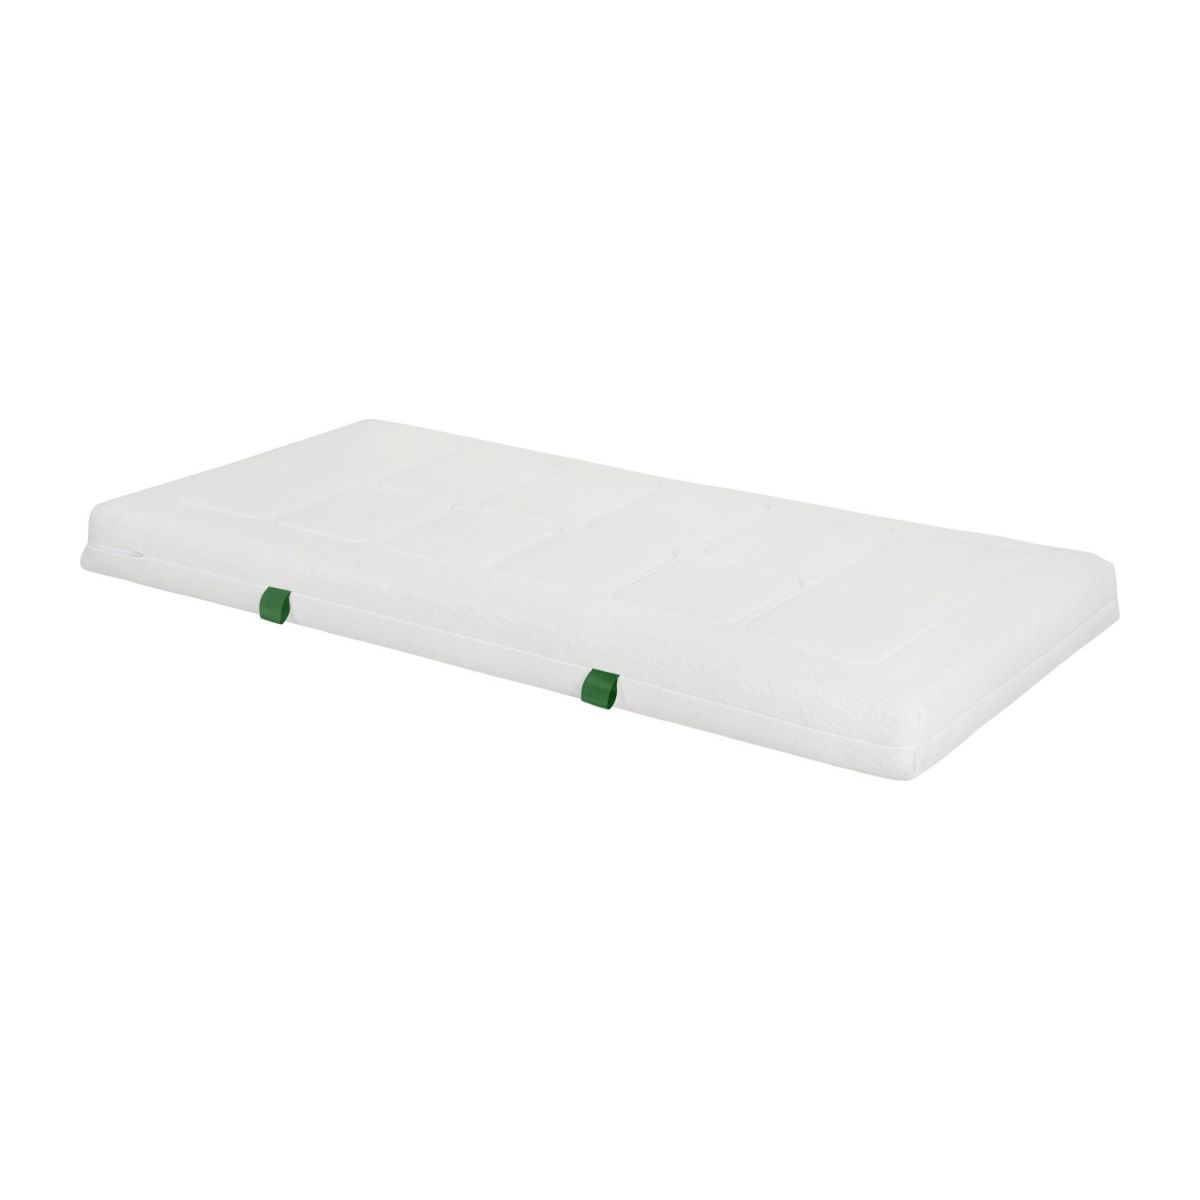 Matelas en latex, width 16 cm, 90x200cm - medium support n°1